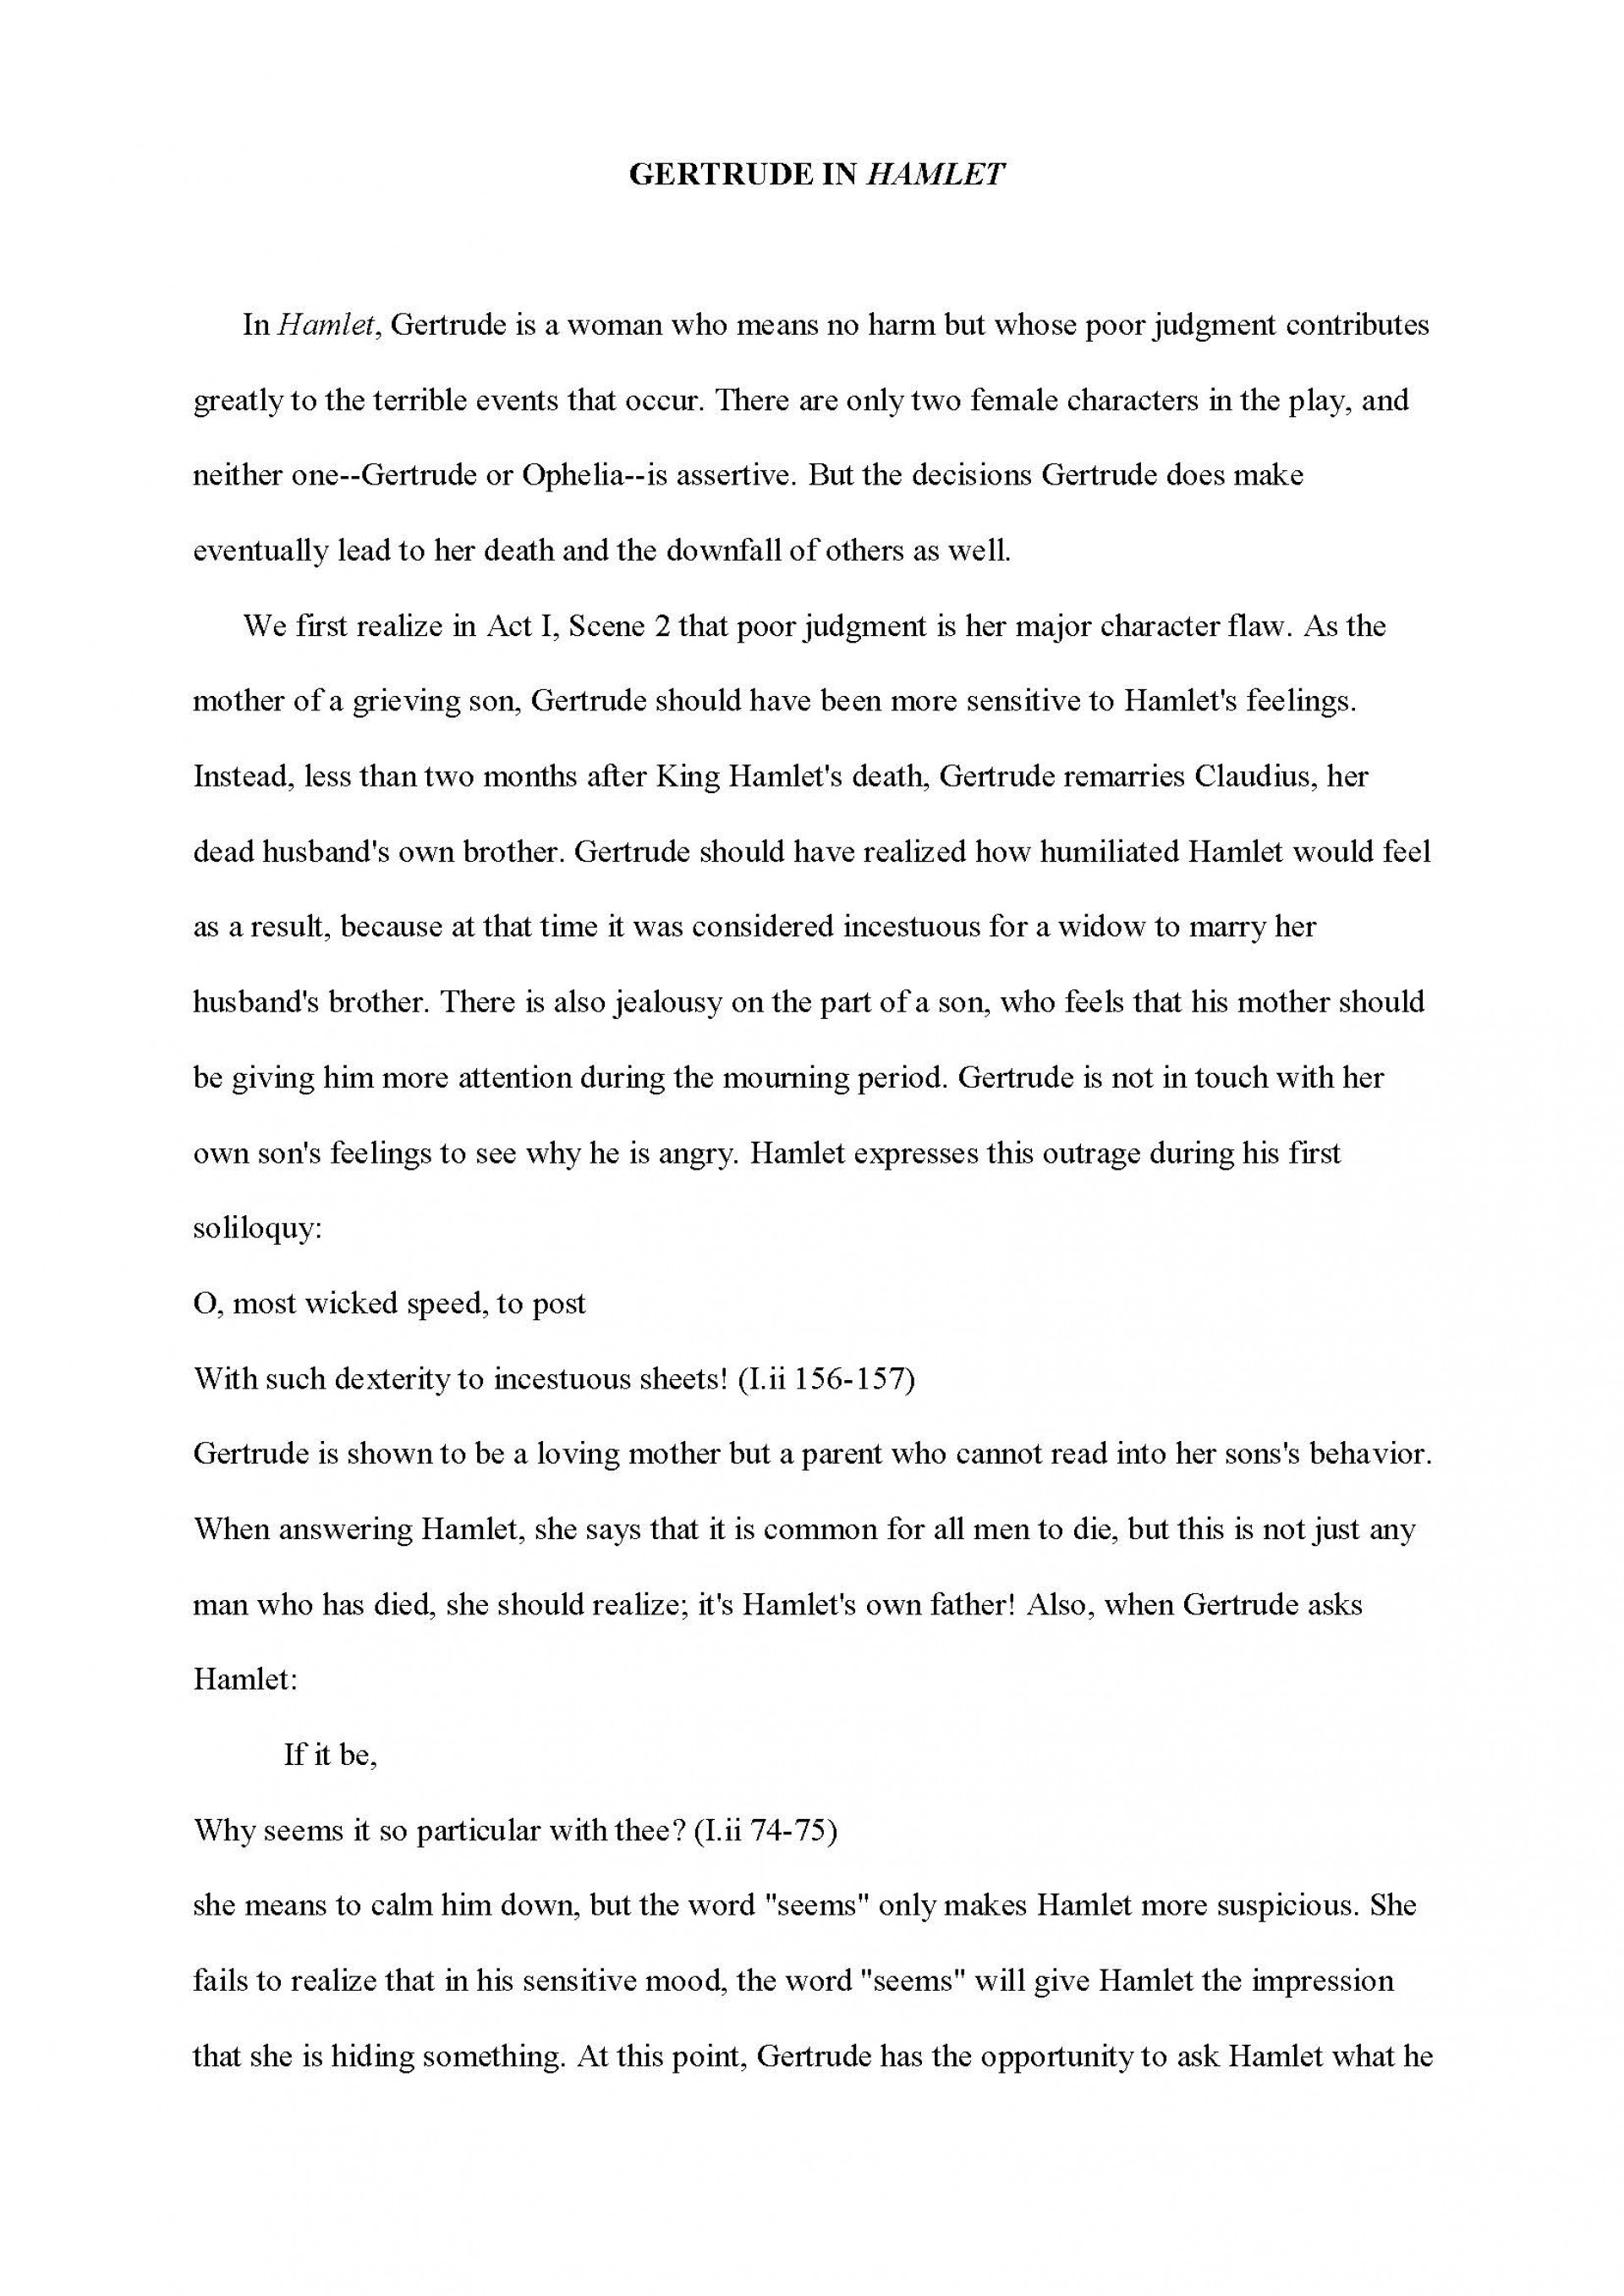 004 Analysis Essay Sample Example How To Write Formidable A Literary Good English Literature Introduction Conclusion Grade 4 1920